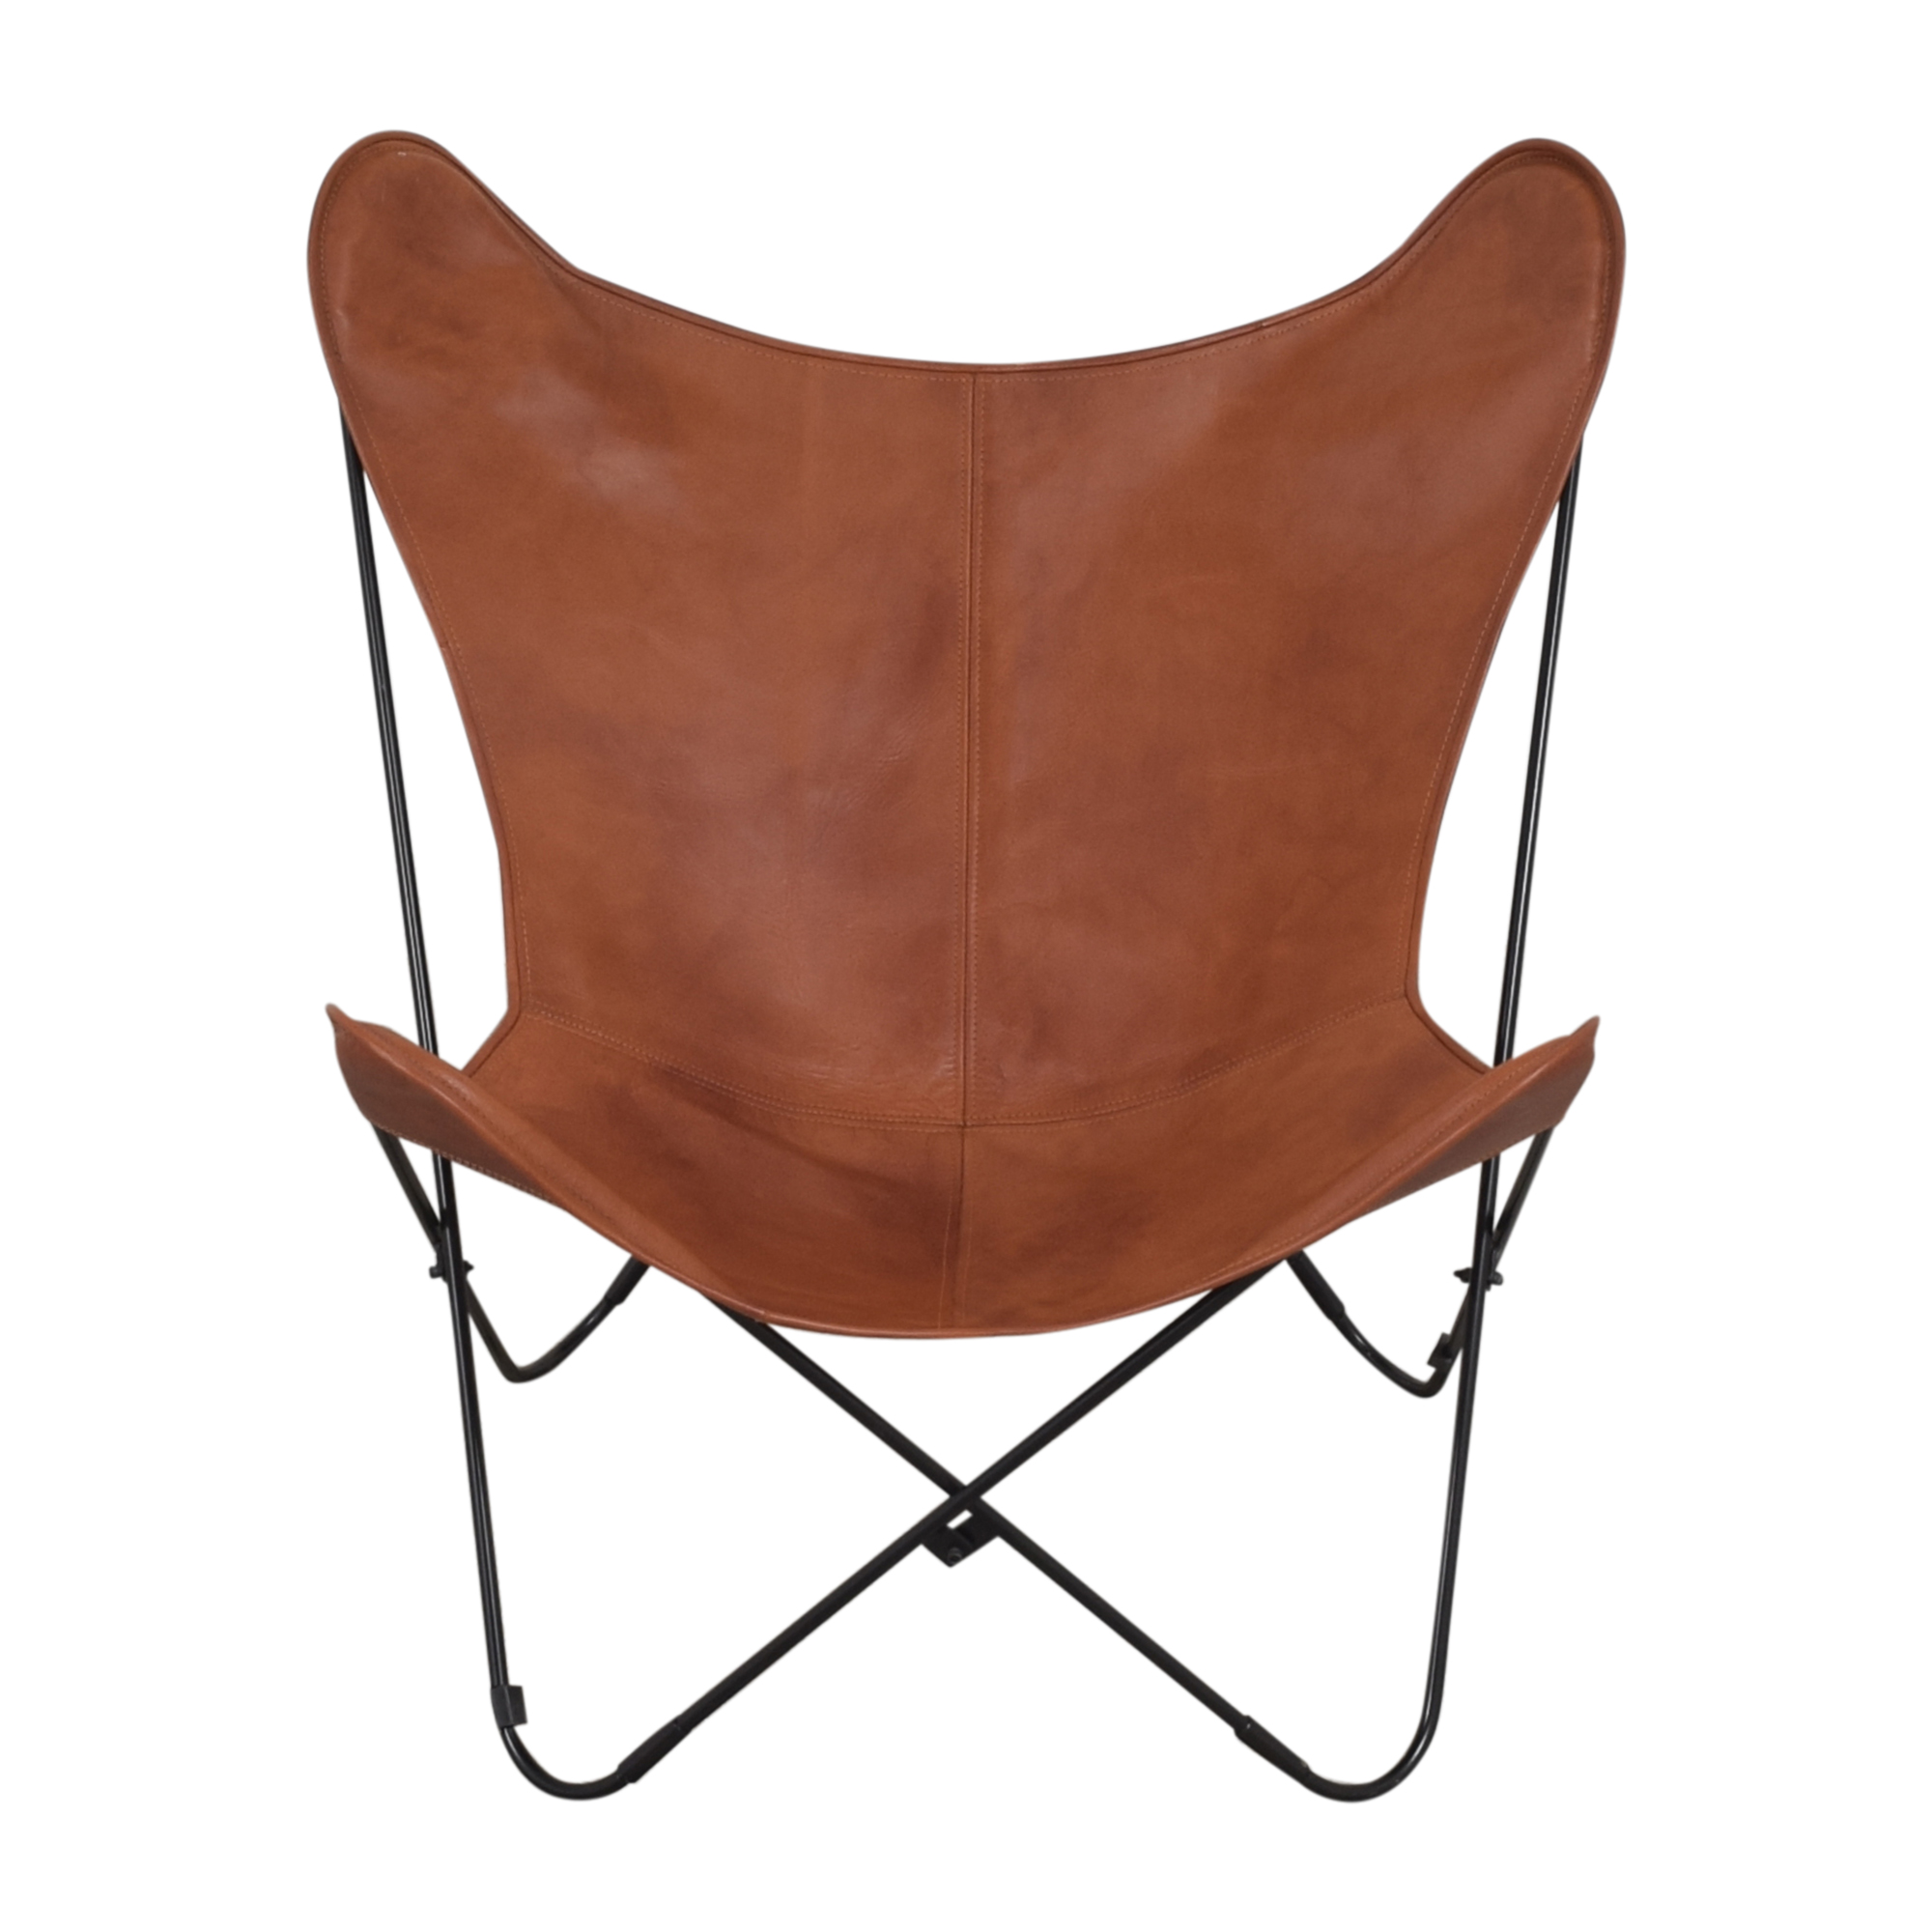 The Citizenry The Citizenry Palermo Accent Chair brown and black